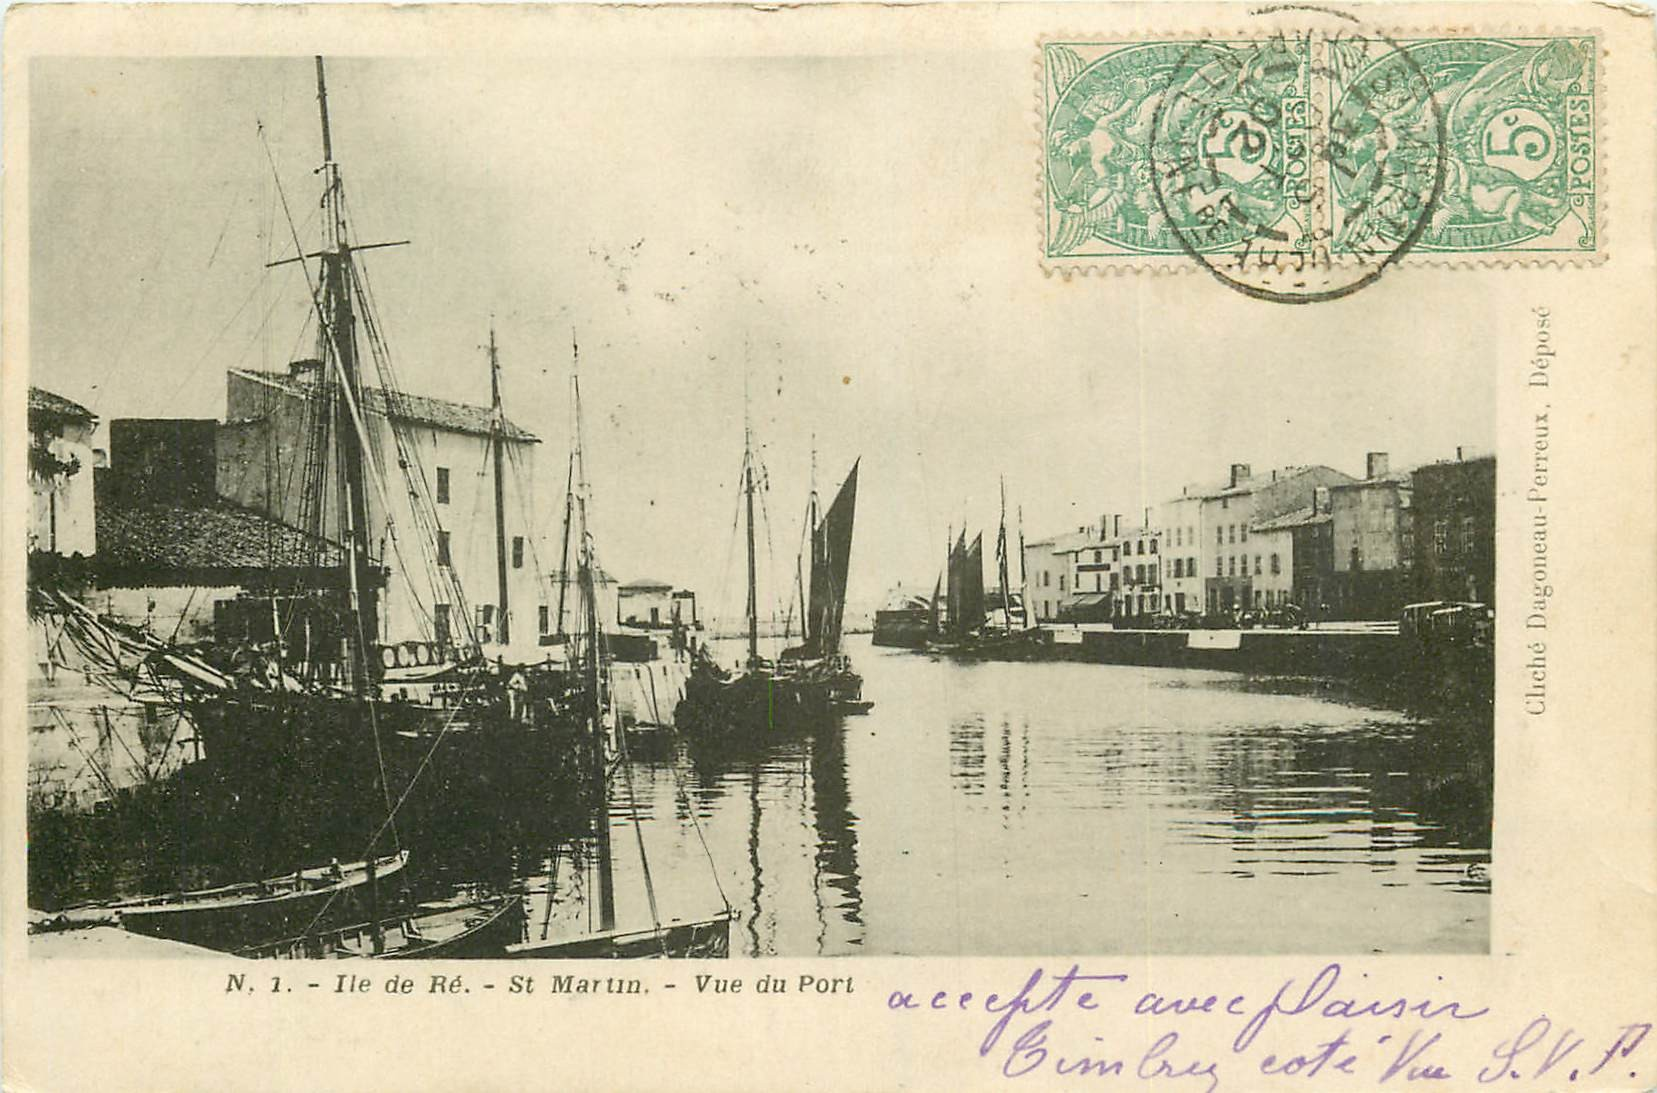 17 SAINT-MARTIN-DE-RE. Vue du Port 1902